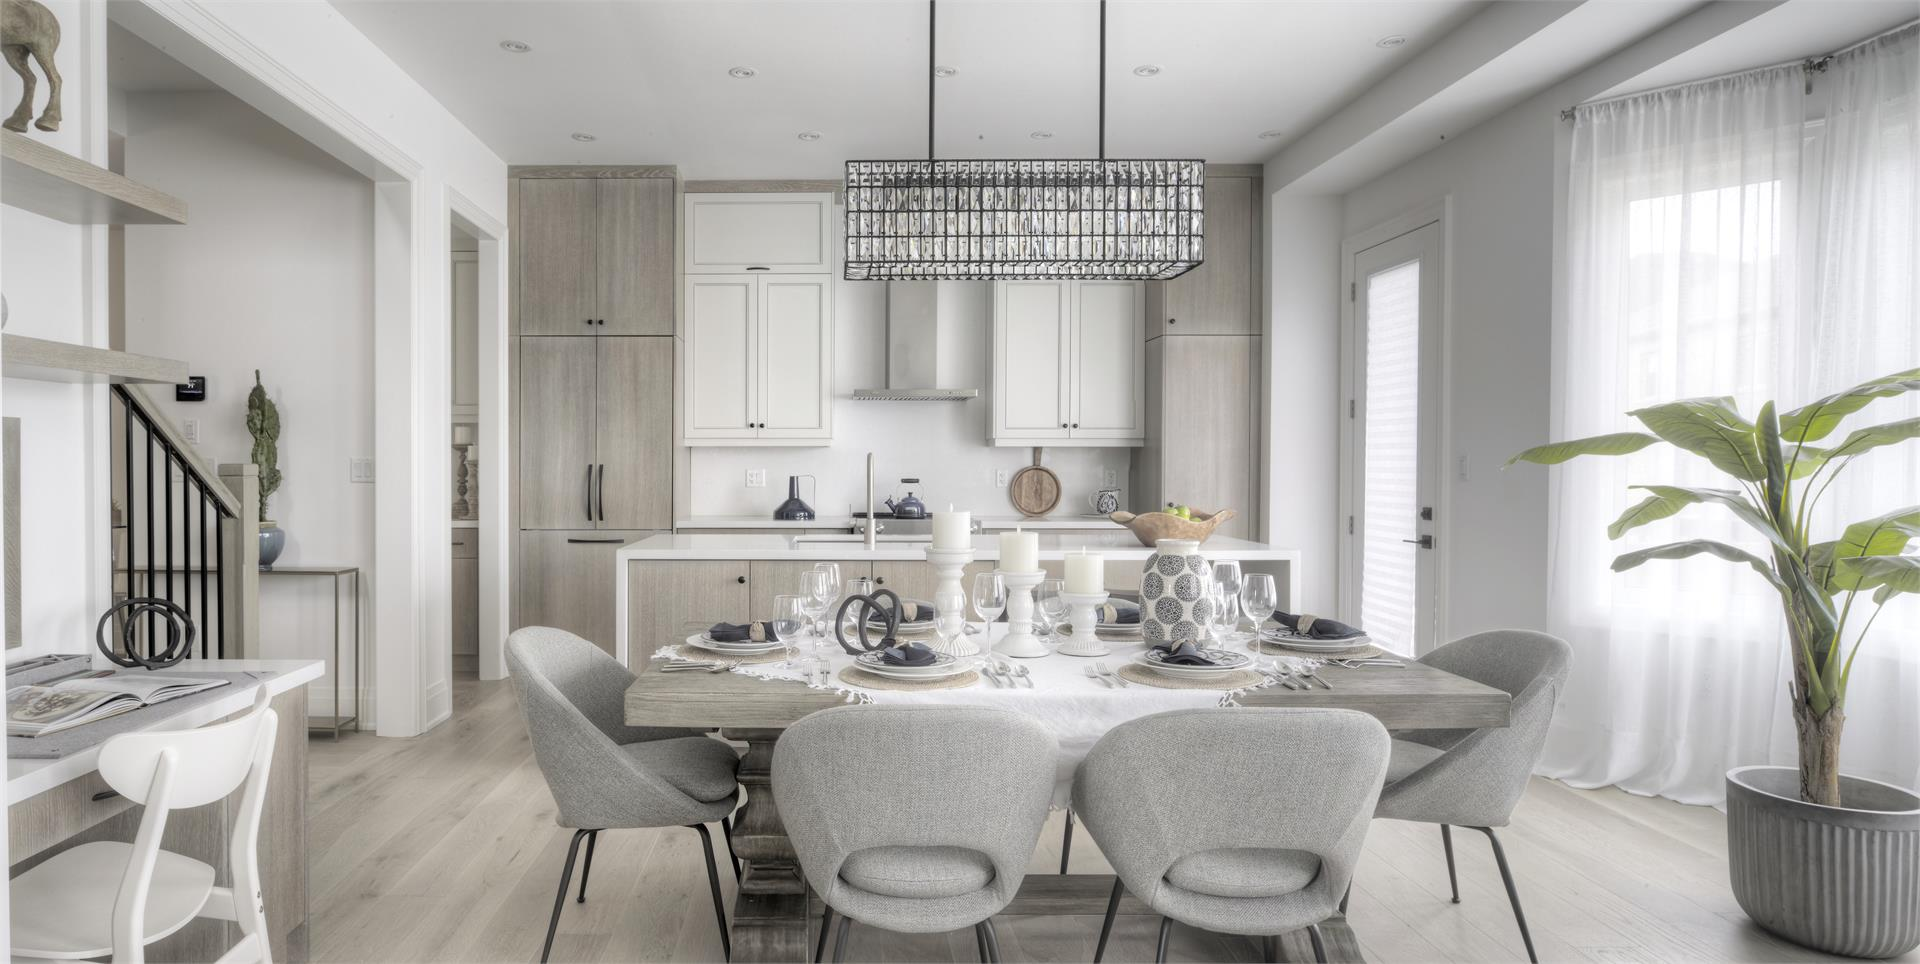 National Homes Launches The Forest Phase 2 With A Designer Decorated Pottery Barn Model Home